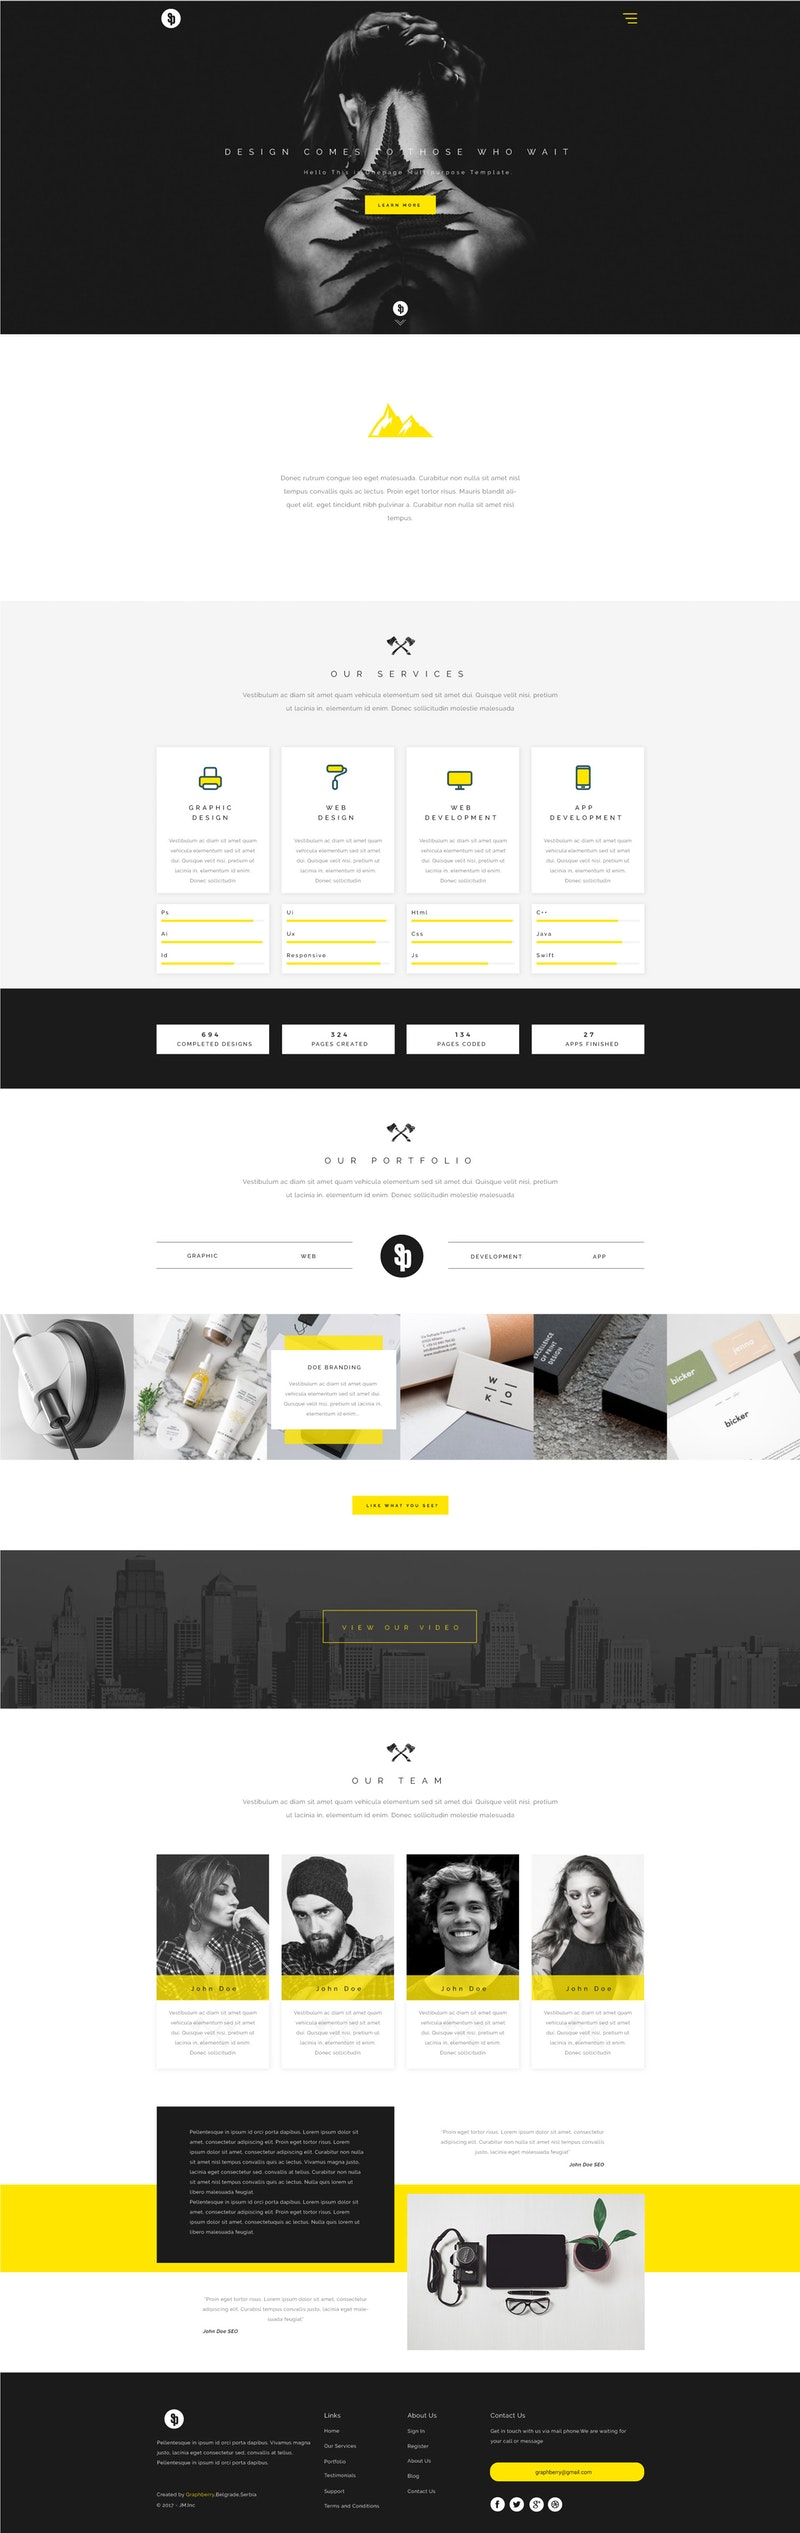 Sparkle - Free Multipurpose PSD Web Template preview